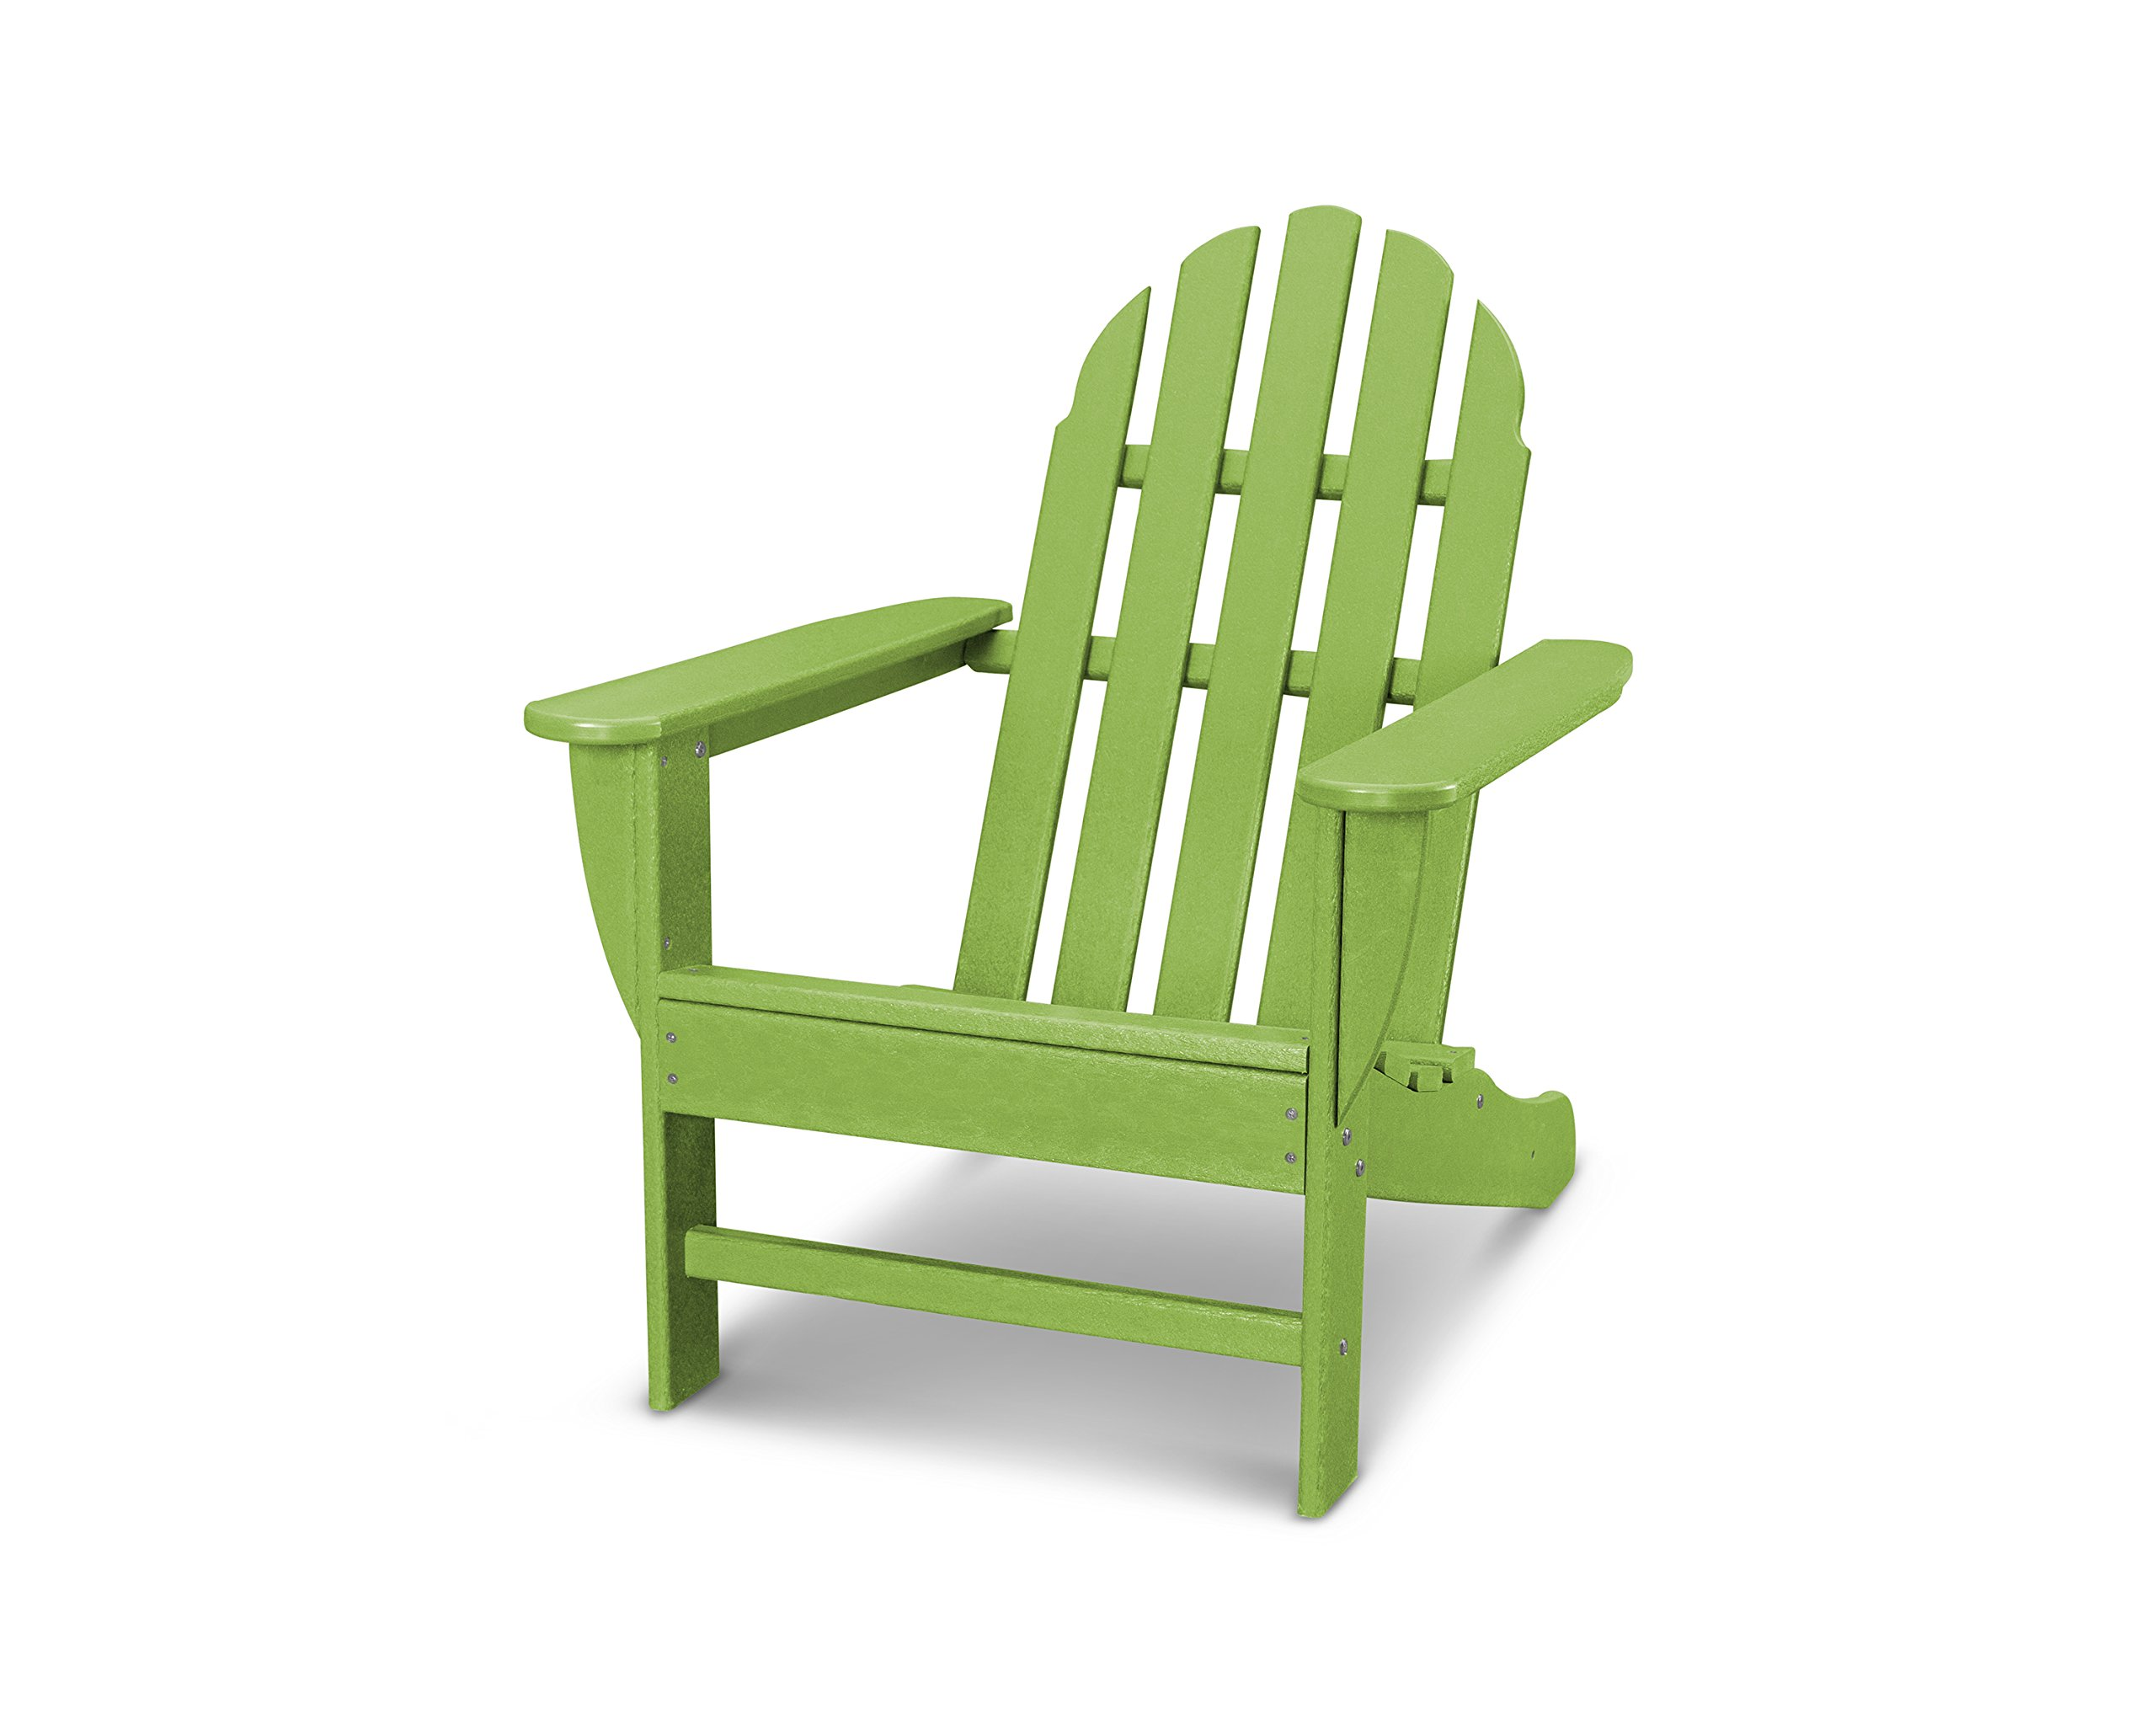 POLYWOOD AD4030LI Classic Outdoor Adirondack Chair, Lime by POLYWOOD